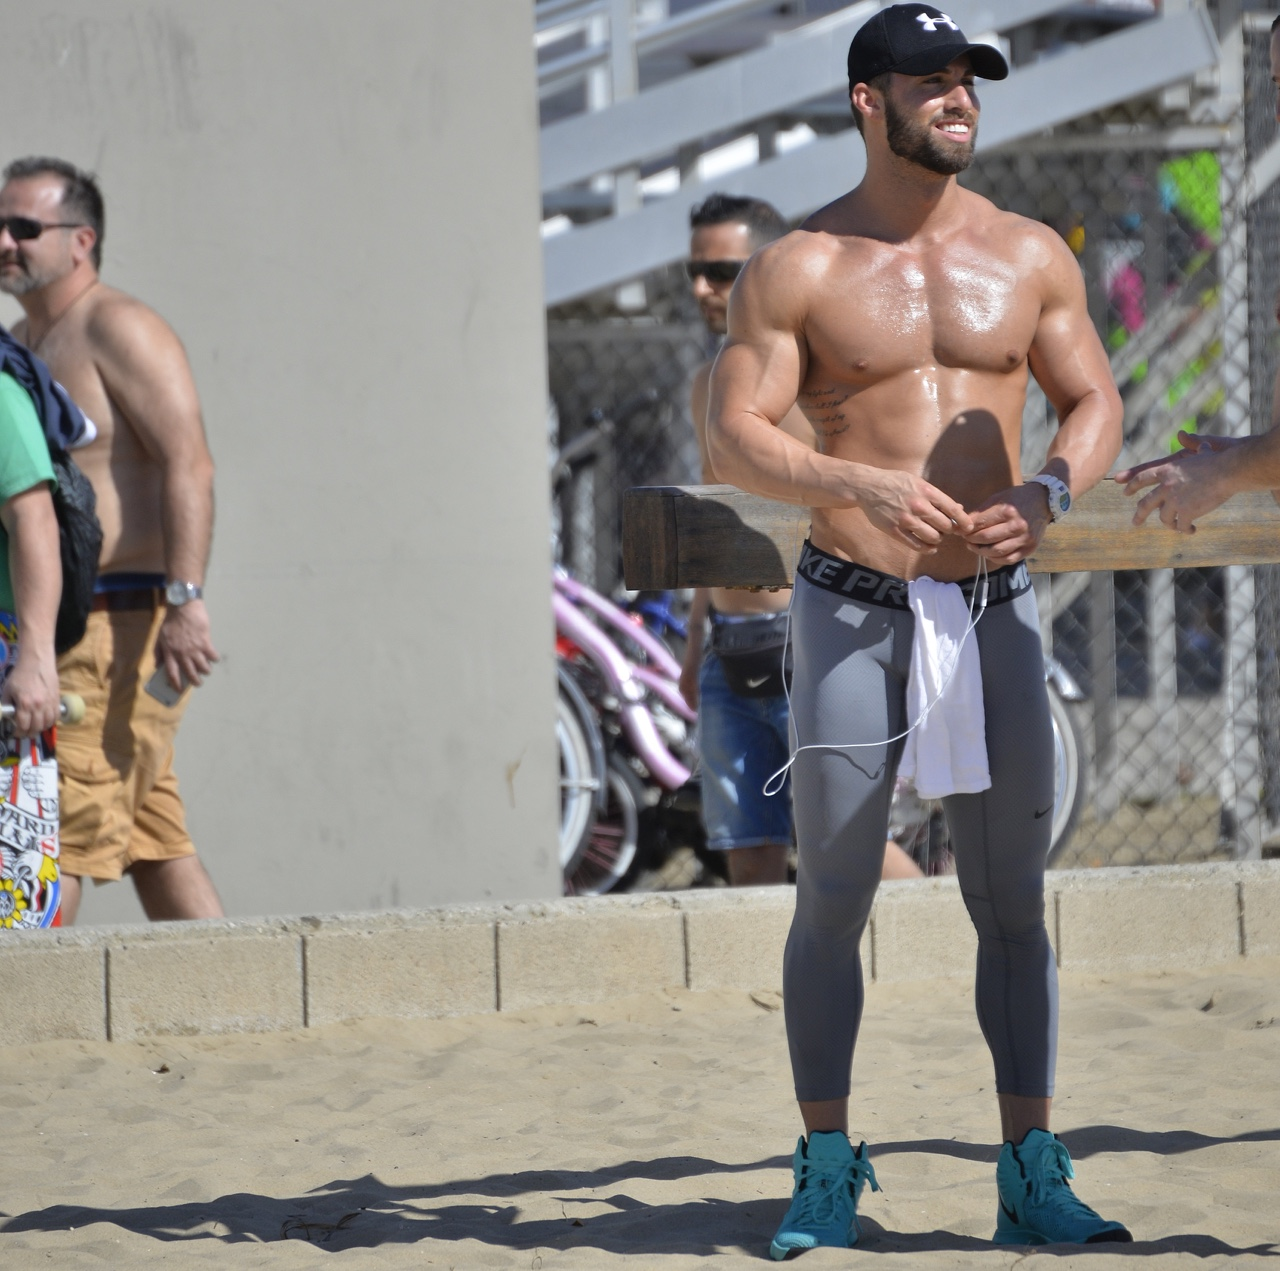 Hot Crossfit Guys